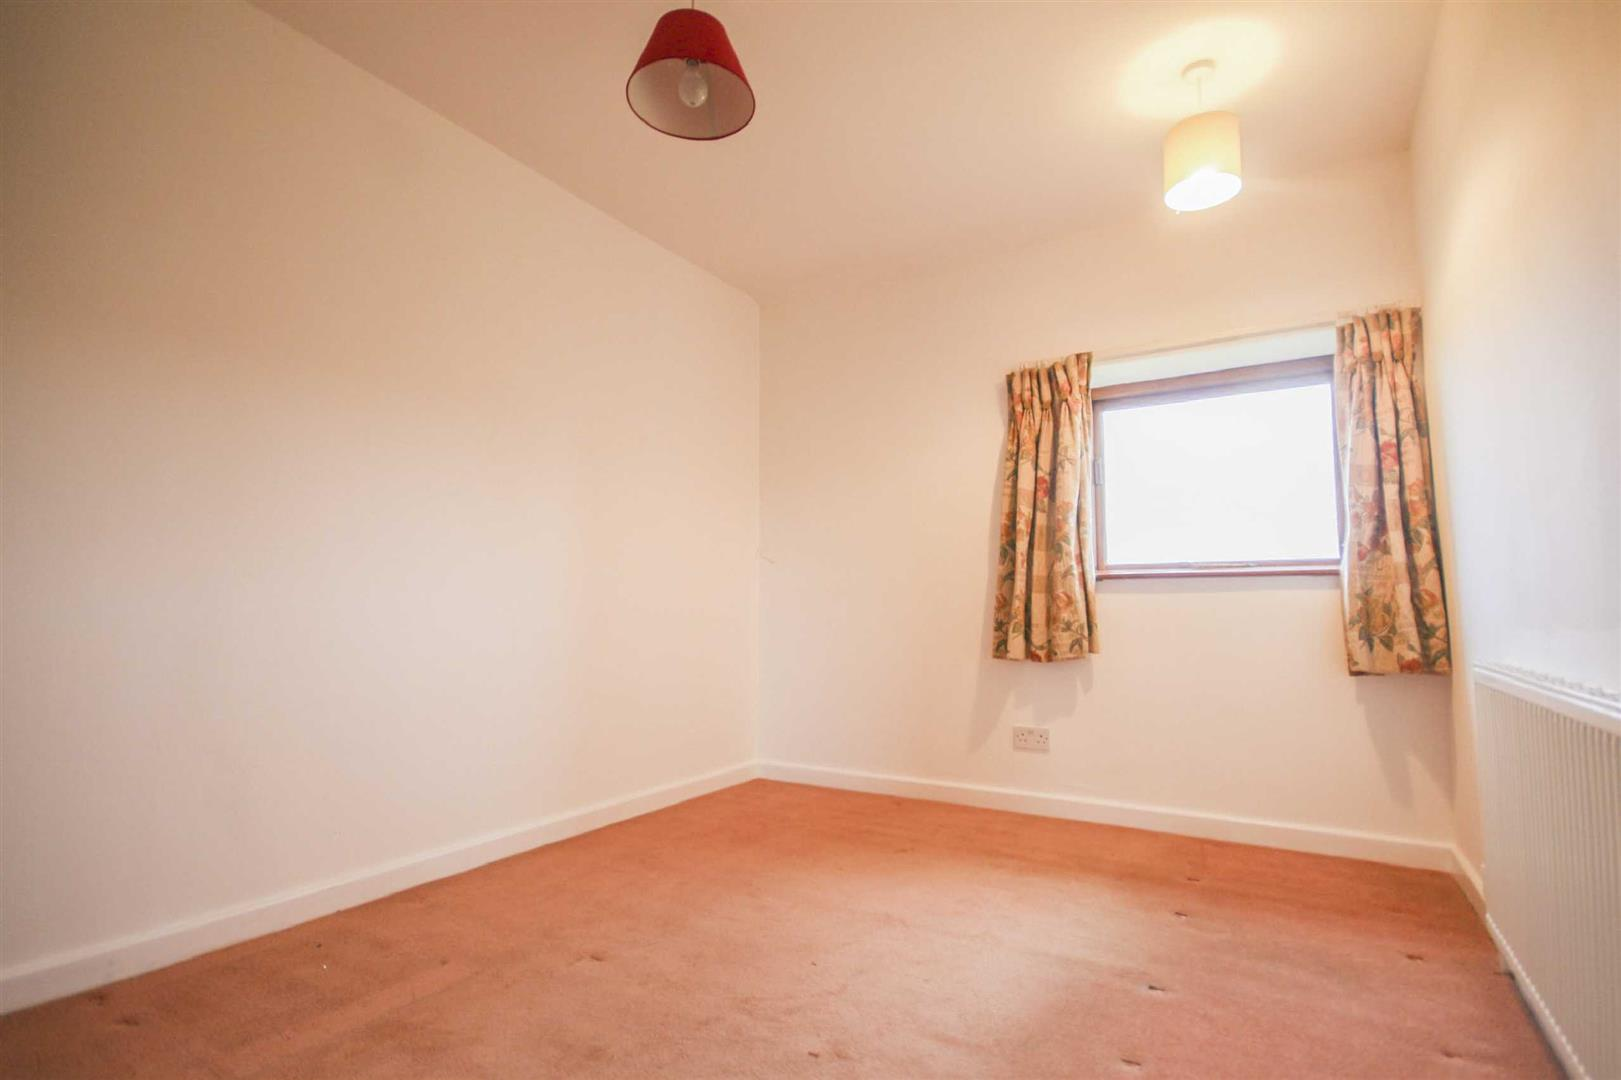 3 Bedroom Barn Conversion For Sale - Image 10